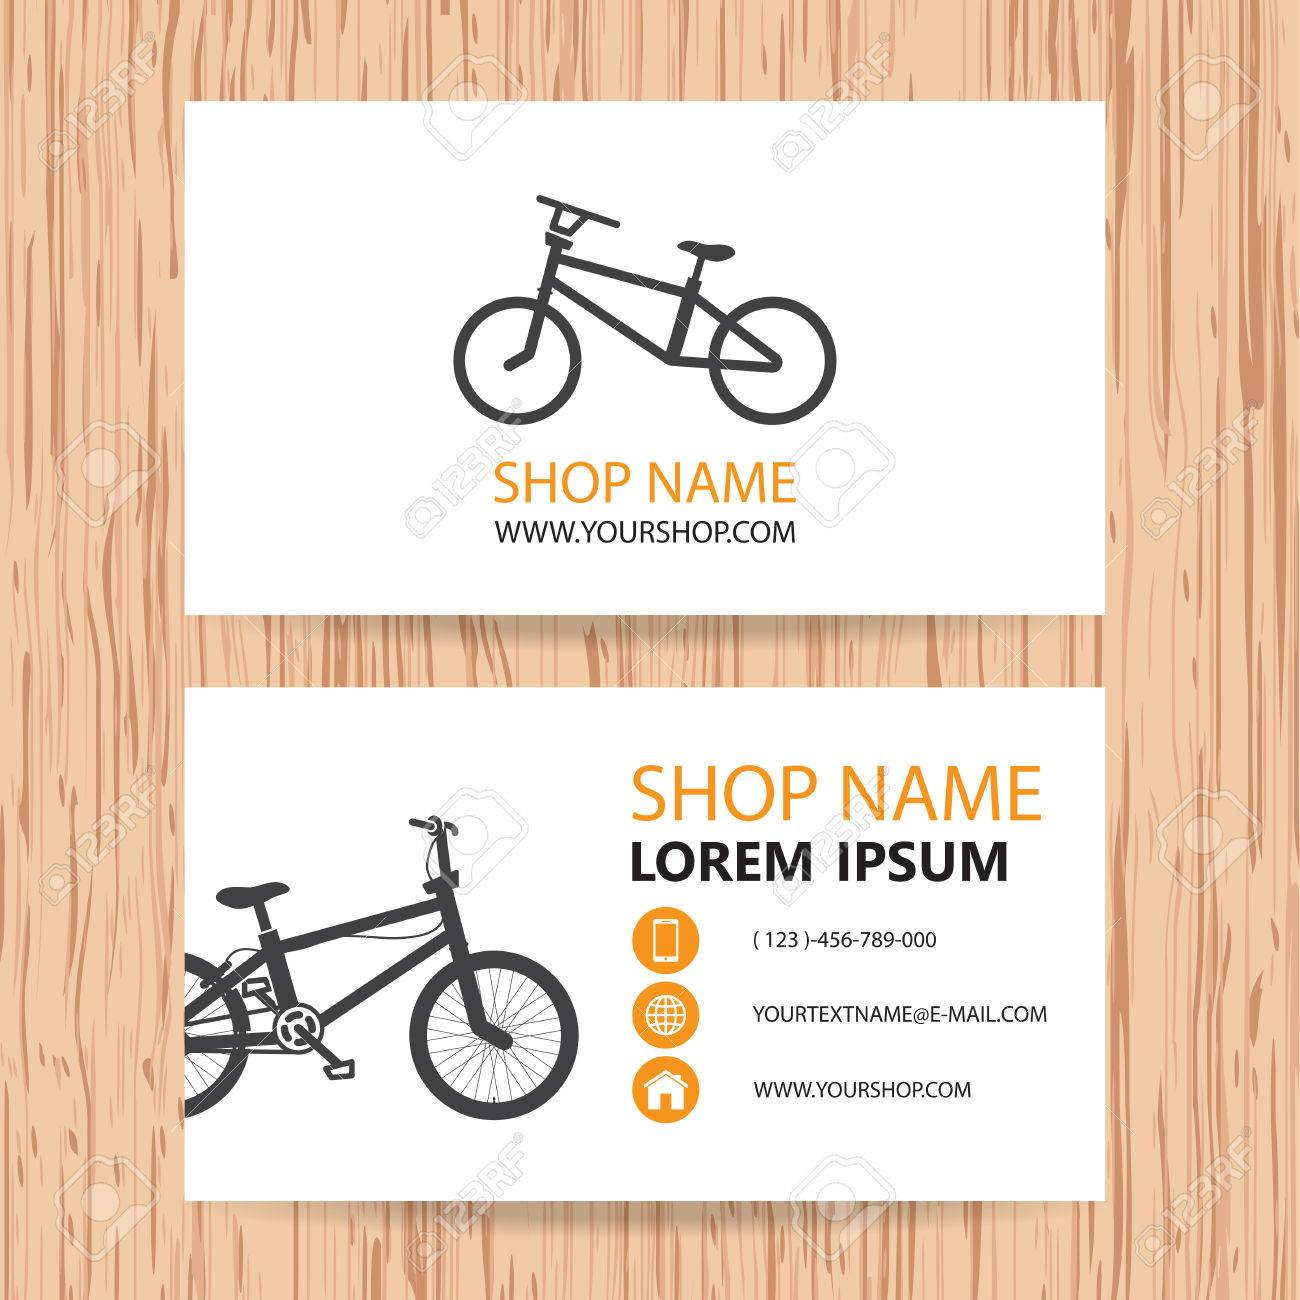 Business Card Vector Background, Bike Shop Royalty Free Cliparts ...